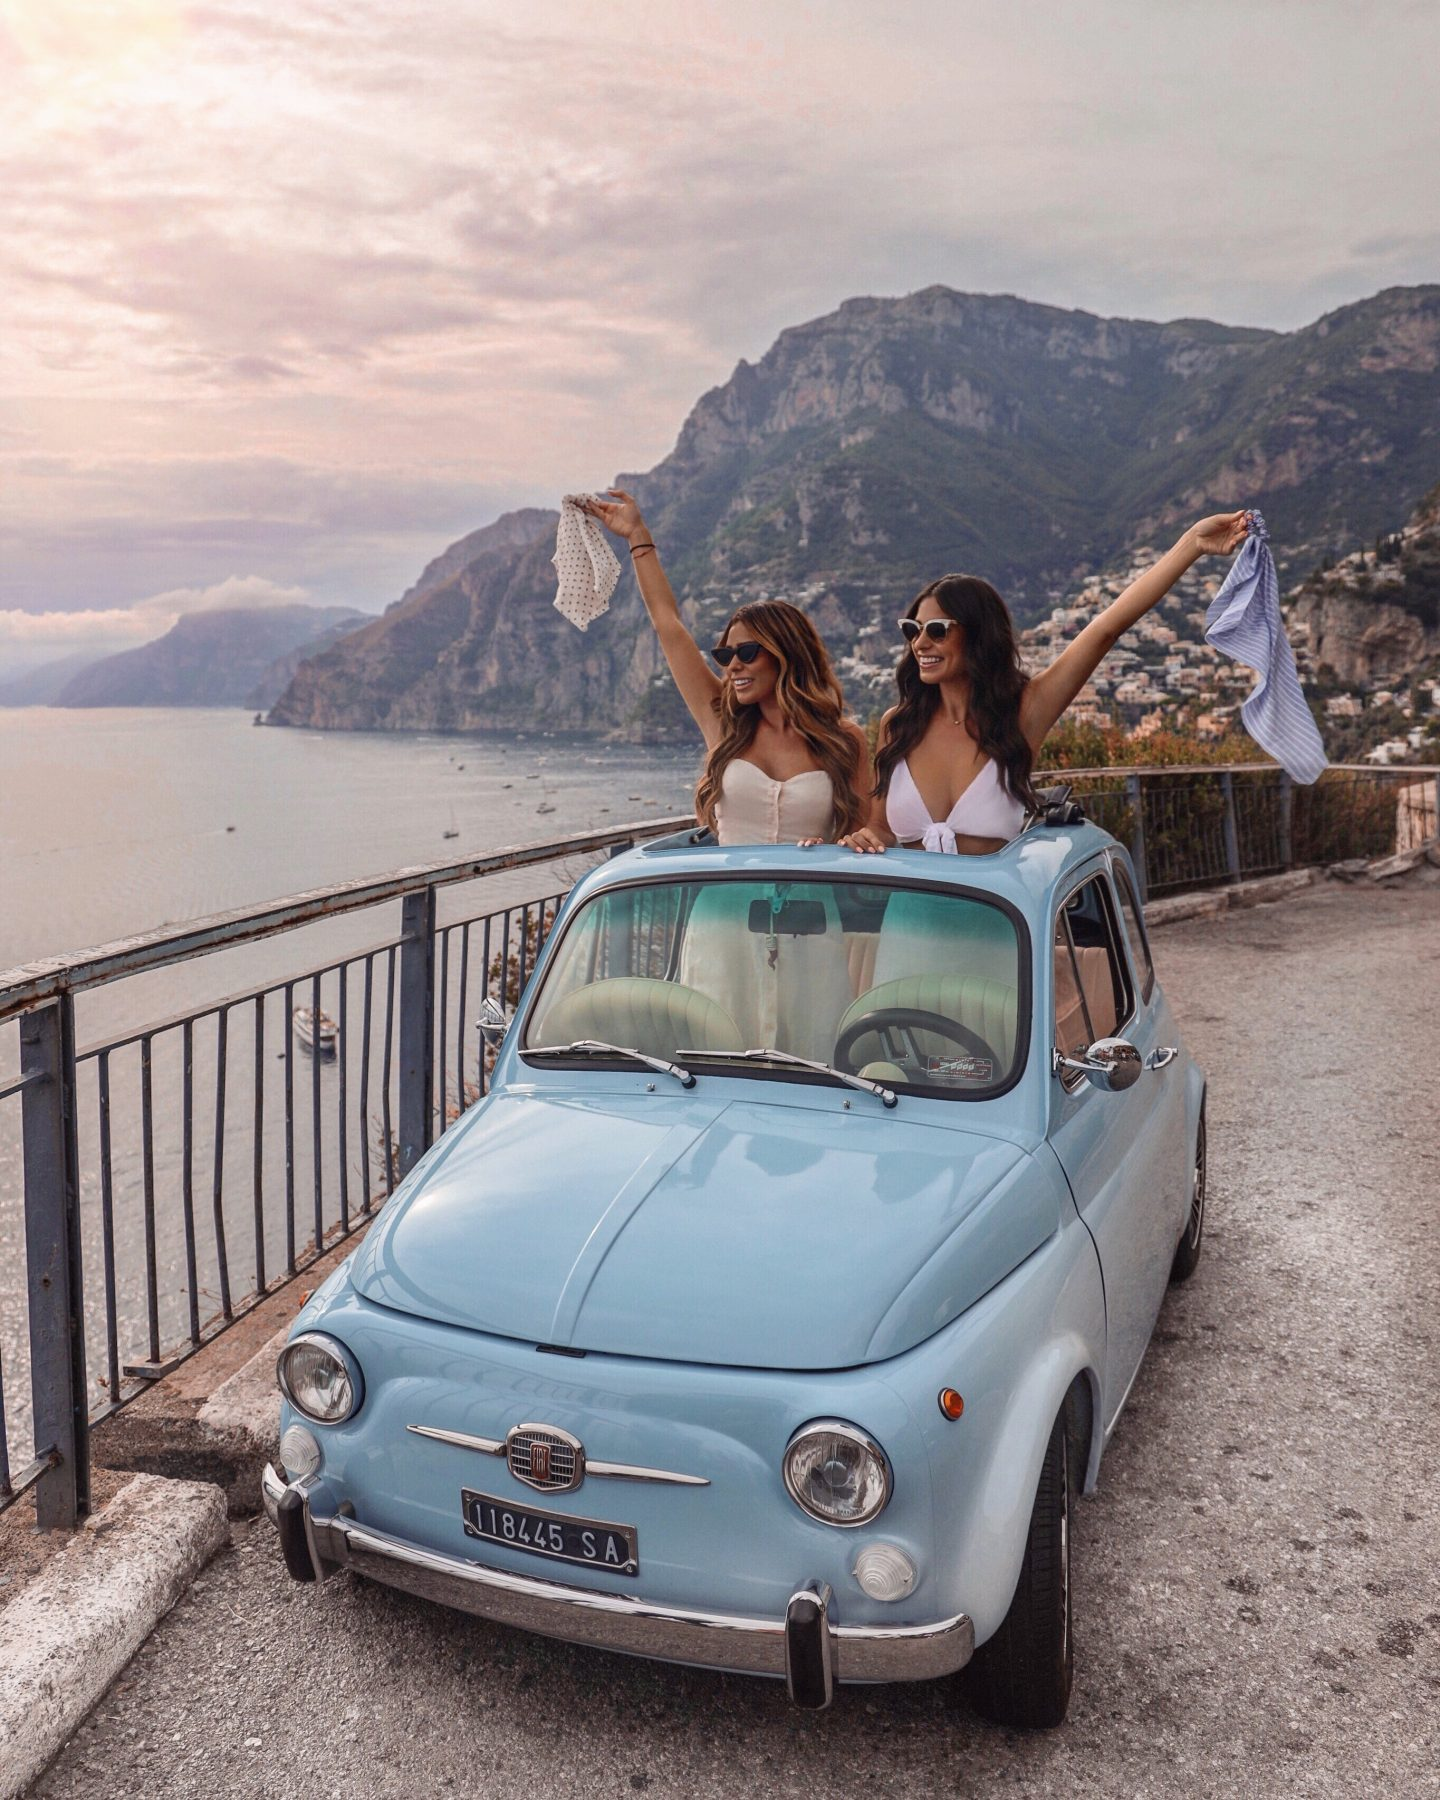 Road trip in Positano Italy